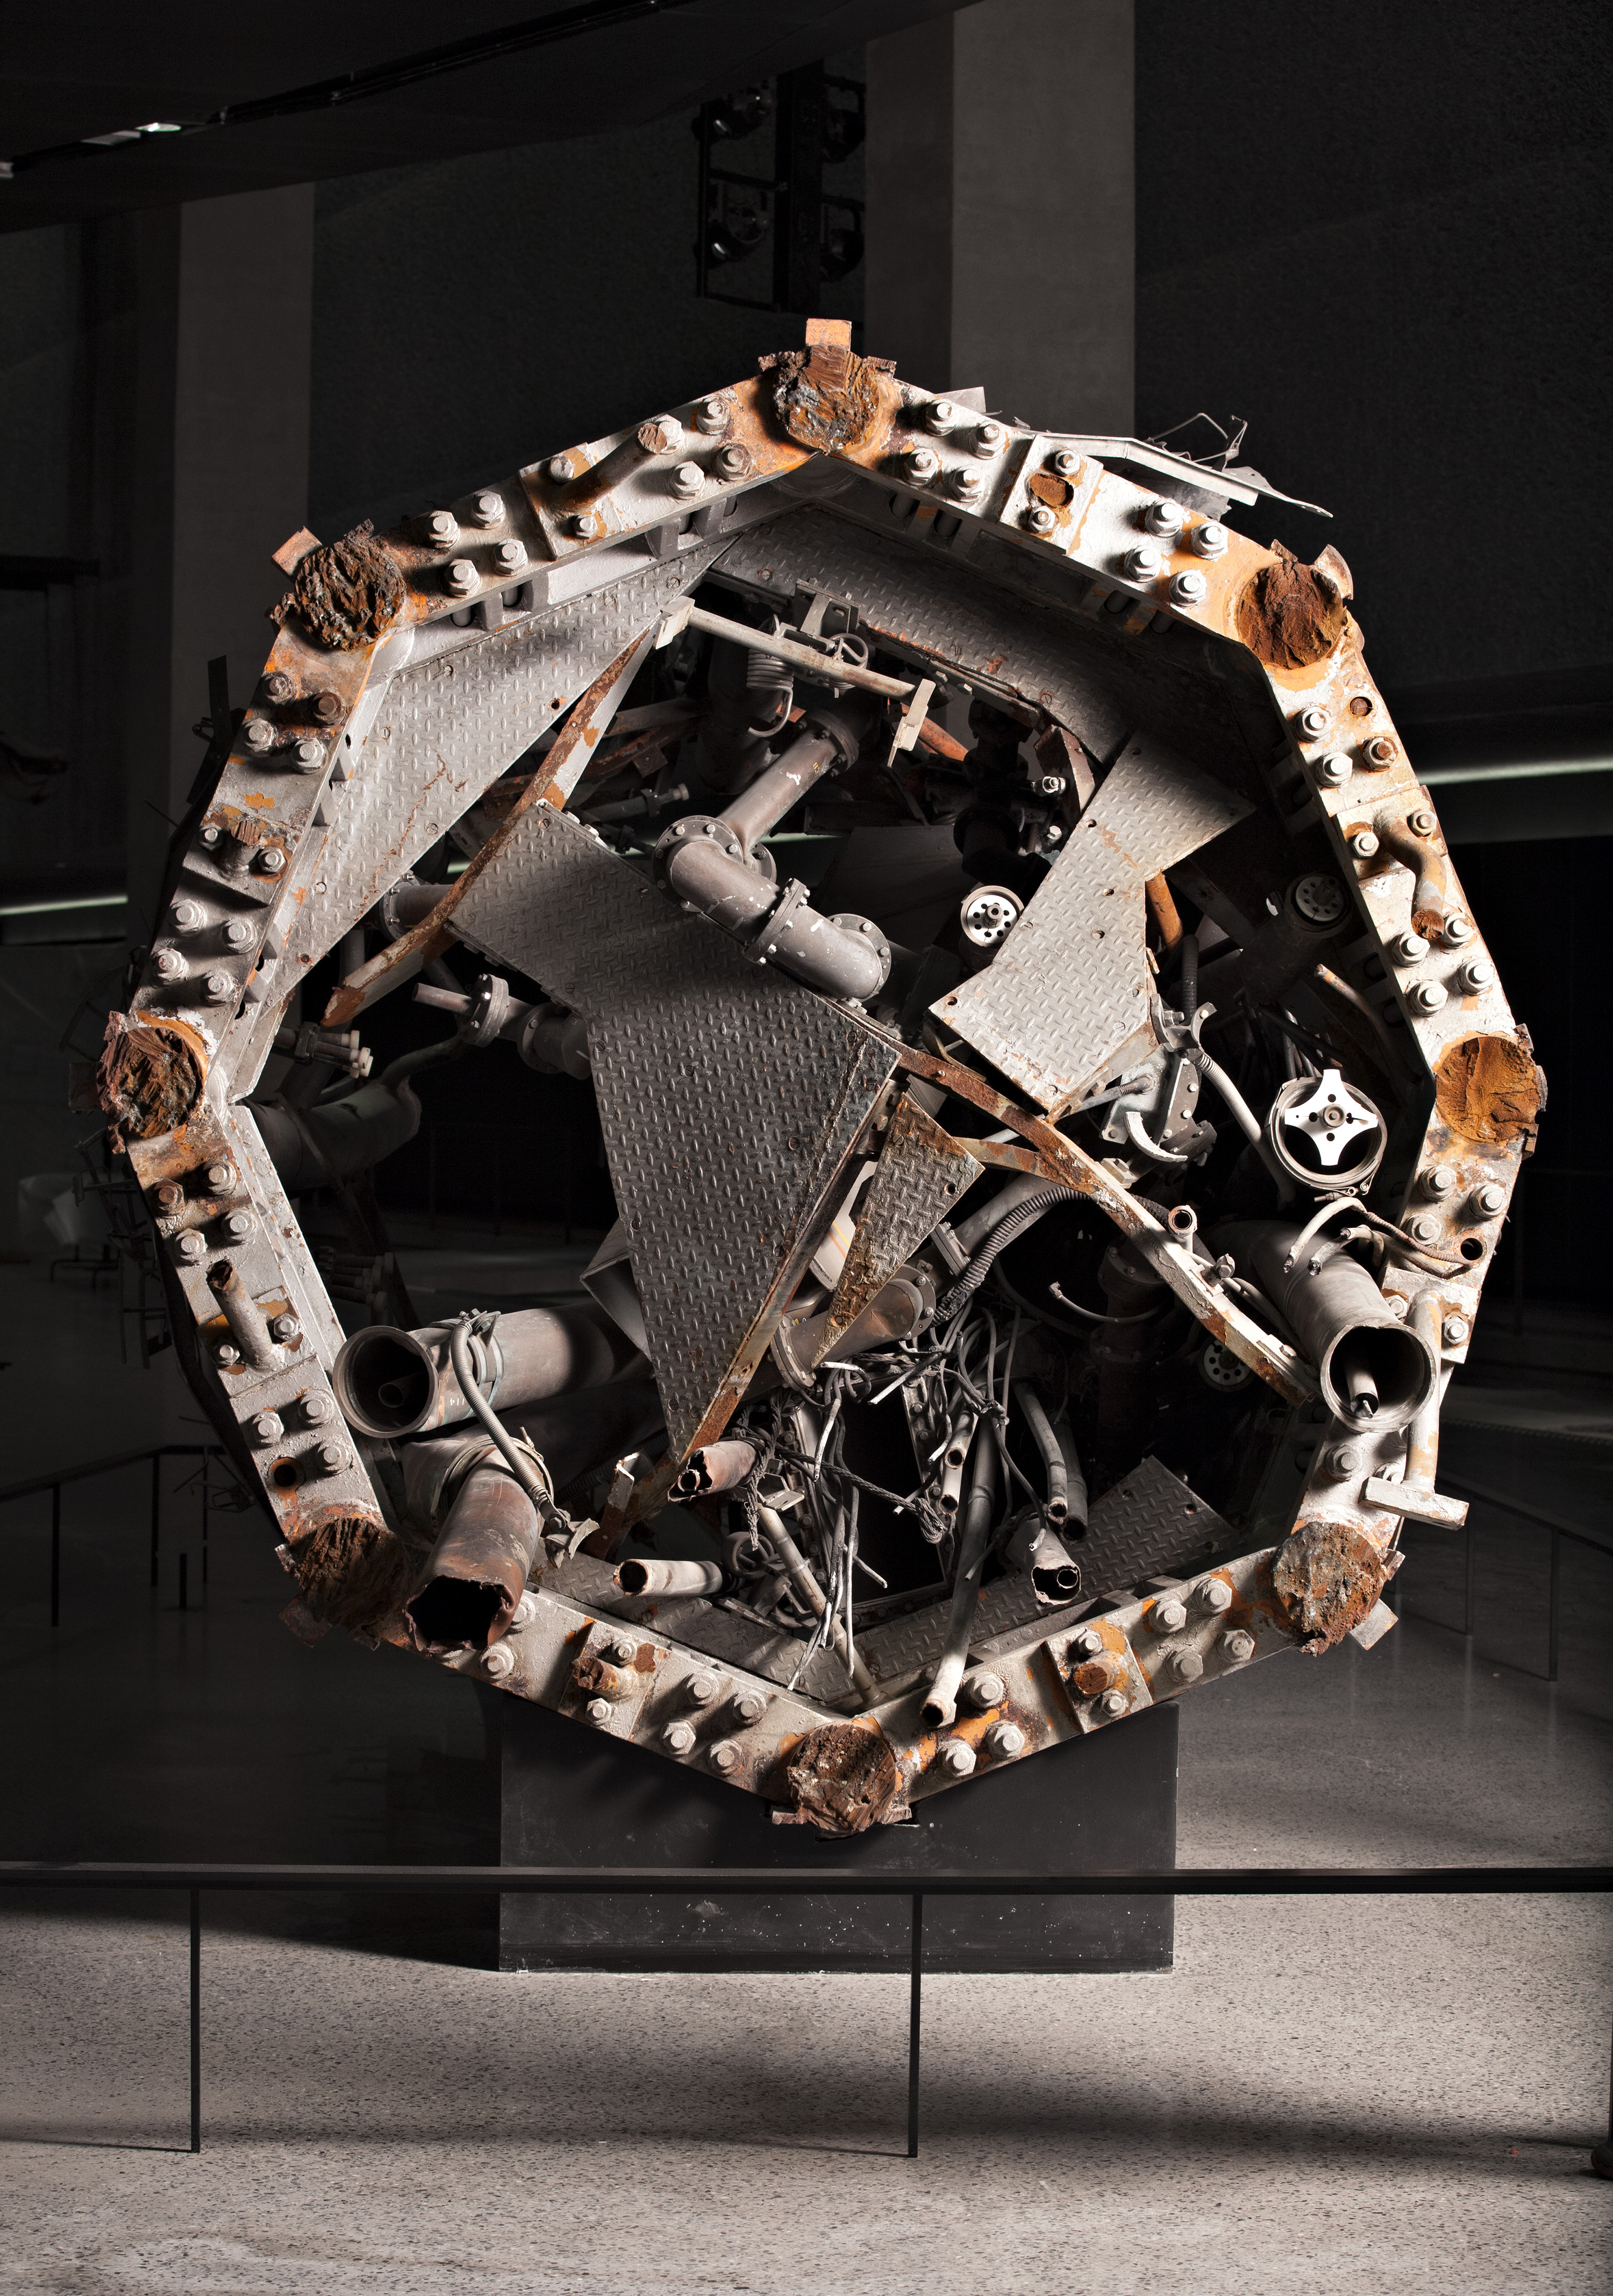 A shattered portion of the enormous broadcasting antenna that topped the north tower of the World Trade Center.